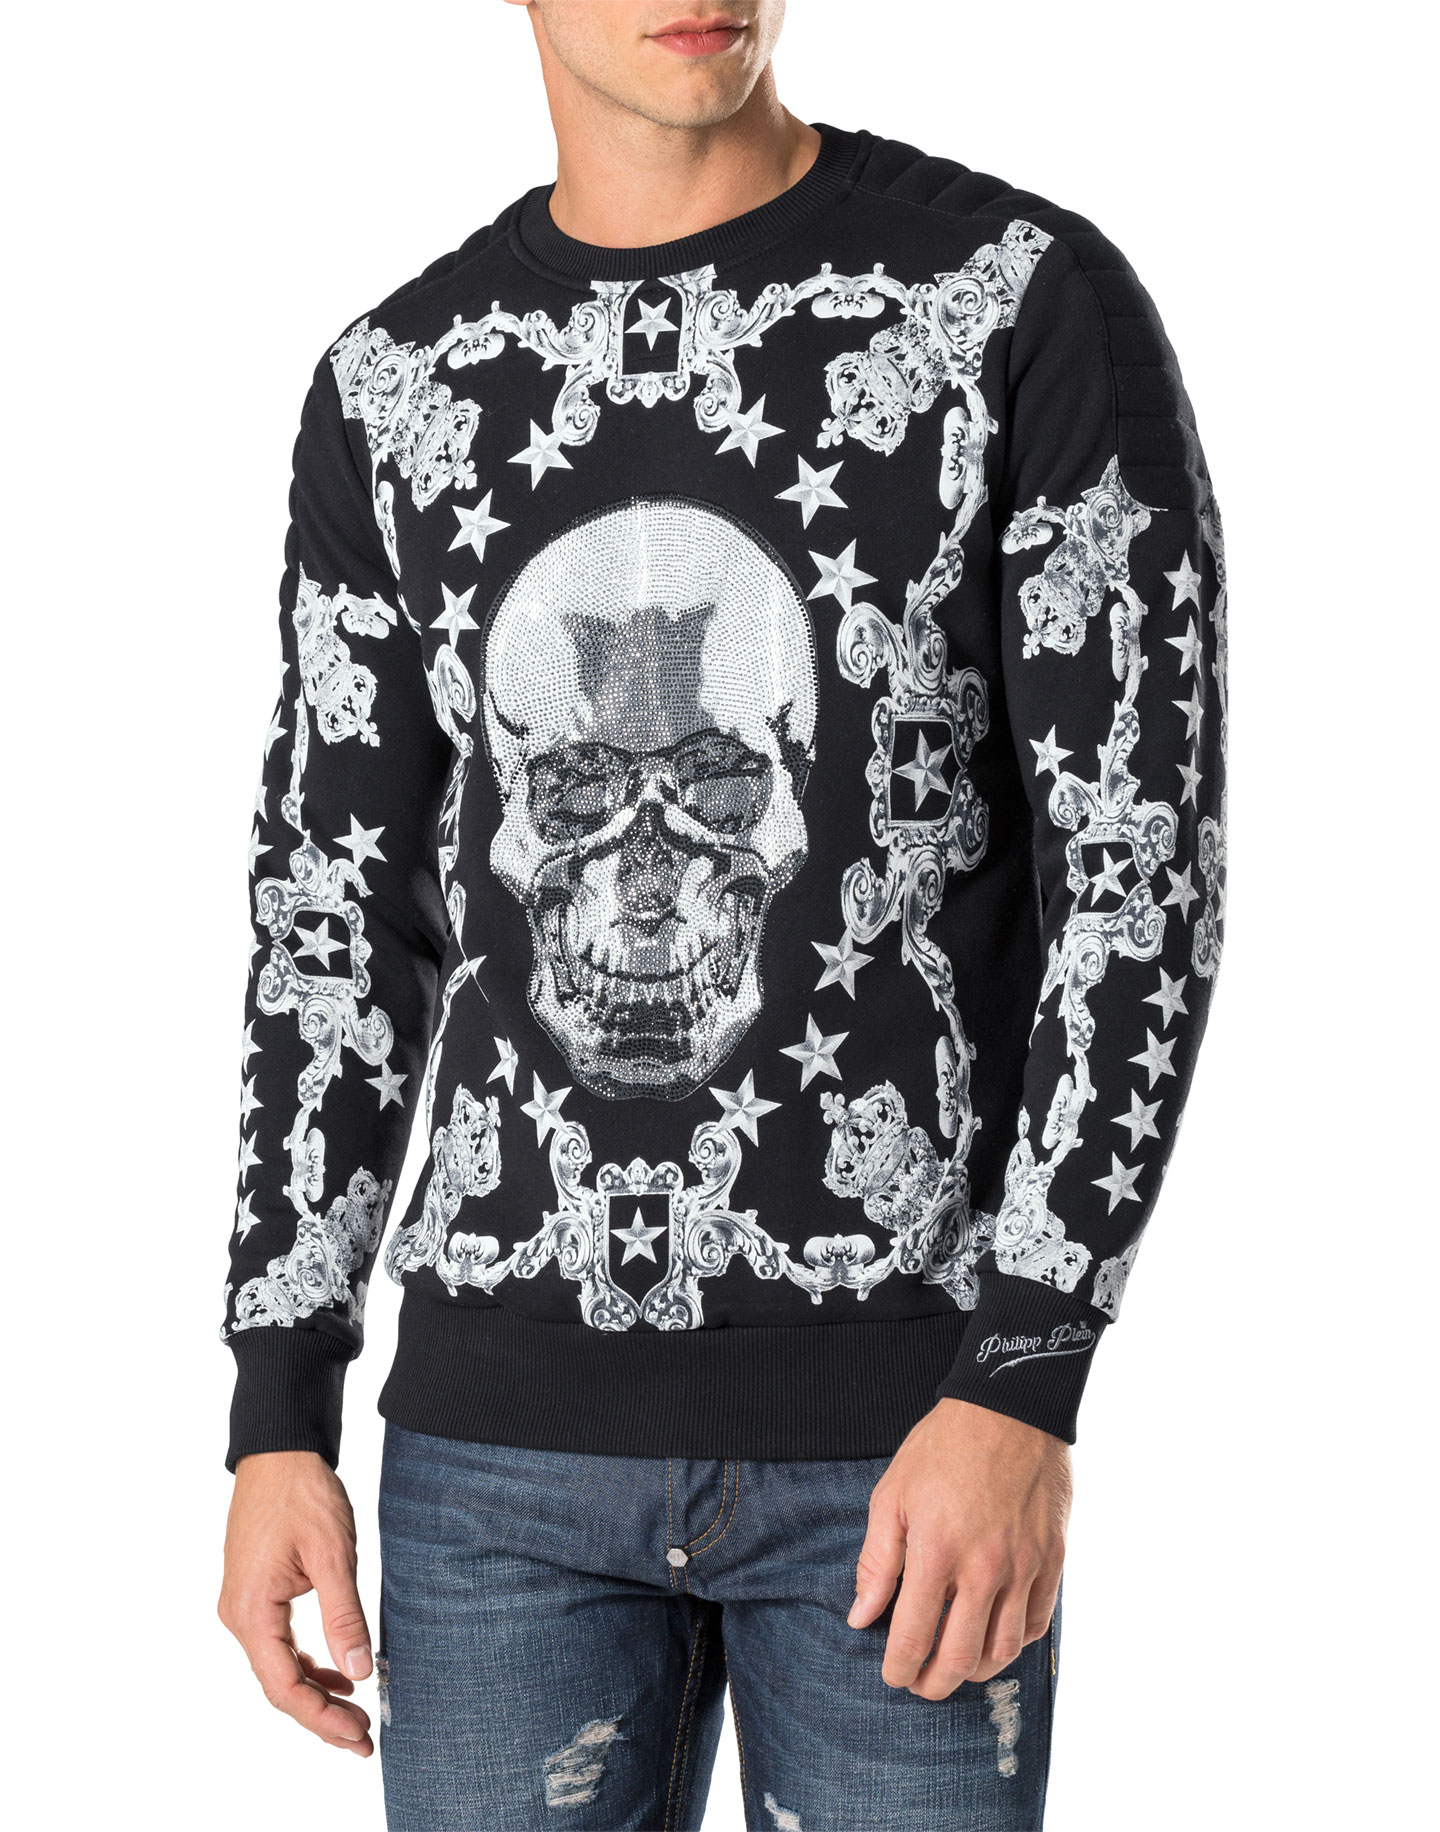 sweatshirt baroque philipp plein outlet. Black Bedroom Furniture Sets. Home Design Ideas